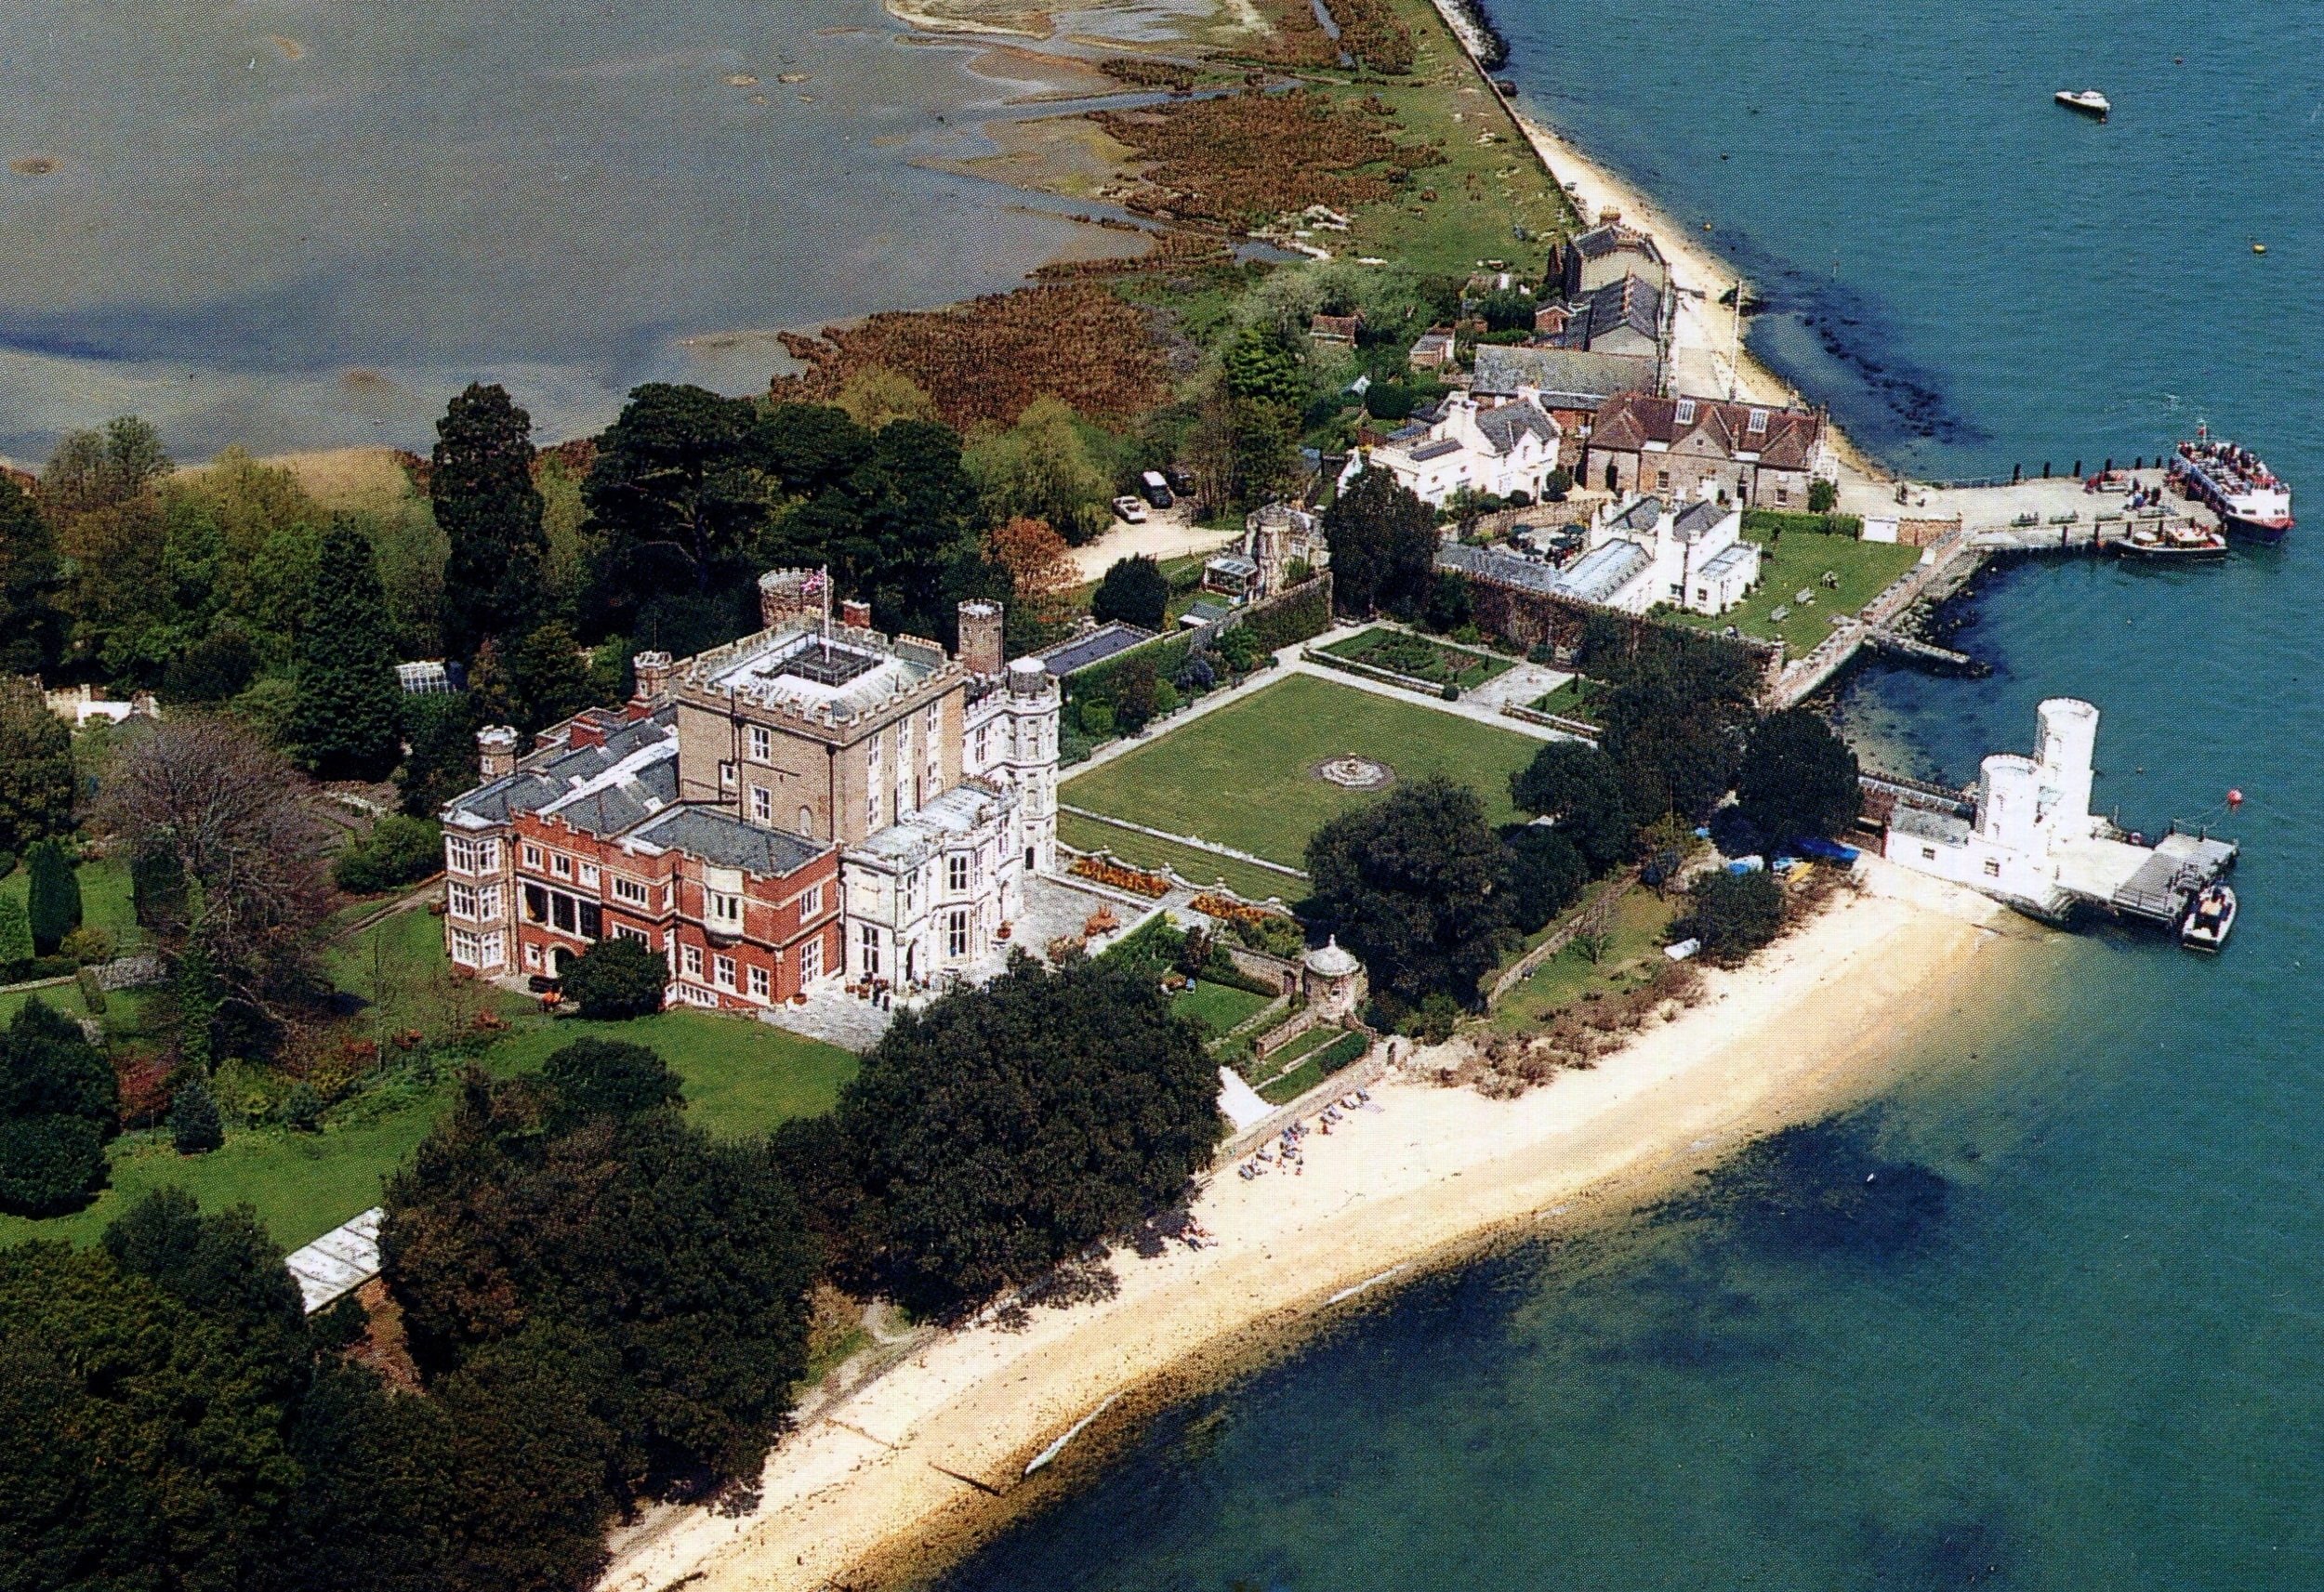 Brownsea Castle, England